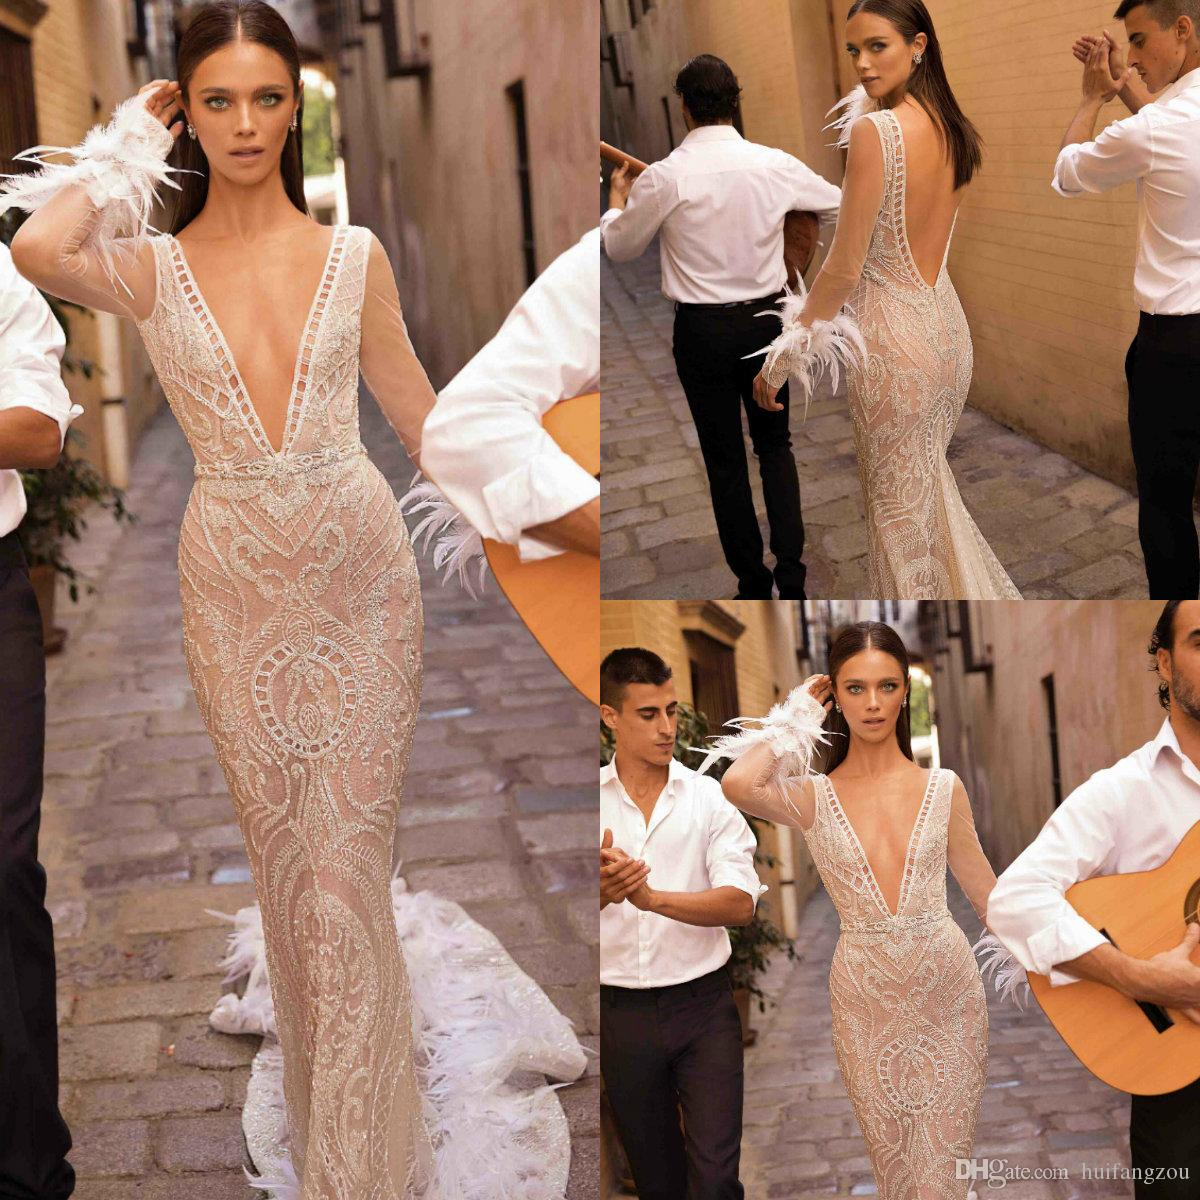 Luxury Mermaid Wedding Dresses Berta 2019 Illusion Deep V Neck Lace Long Sleeves Wedding Dress With Feathers Design Backless Bridal Gowns